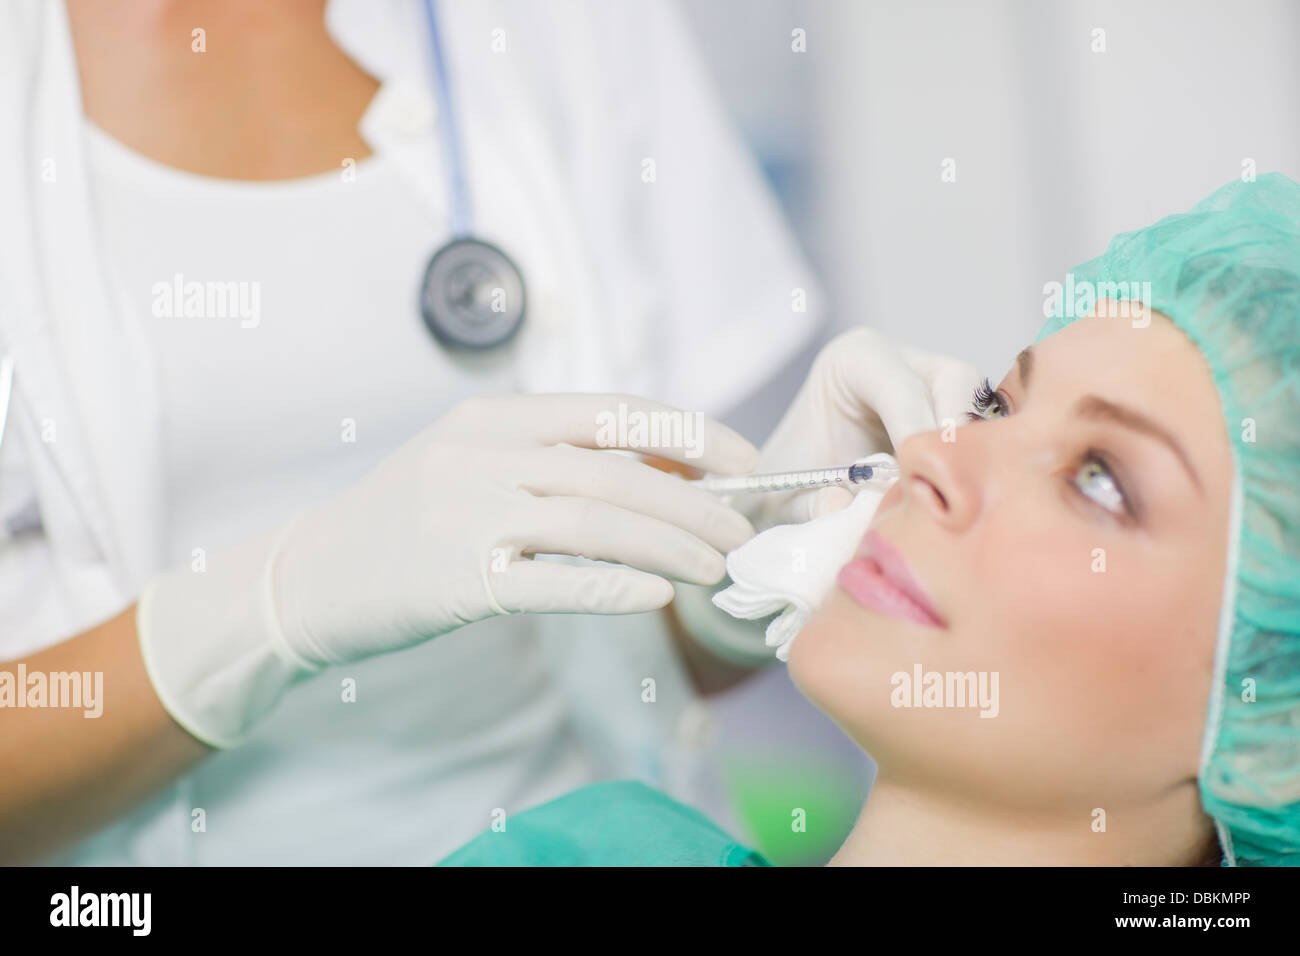 Woman Getting A Botox Injection On Her Face - Stock Image